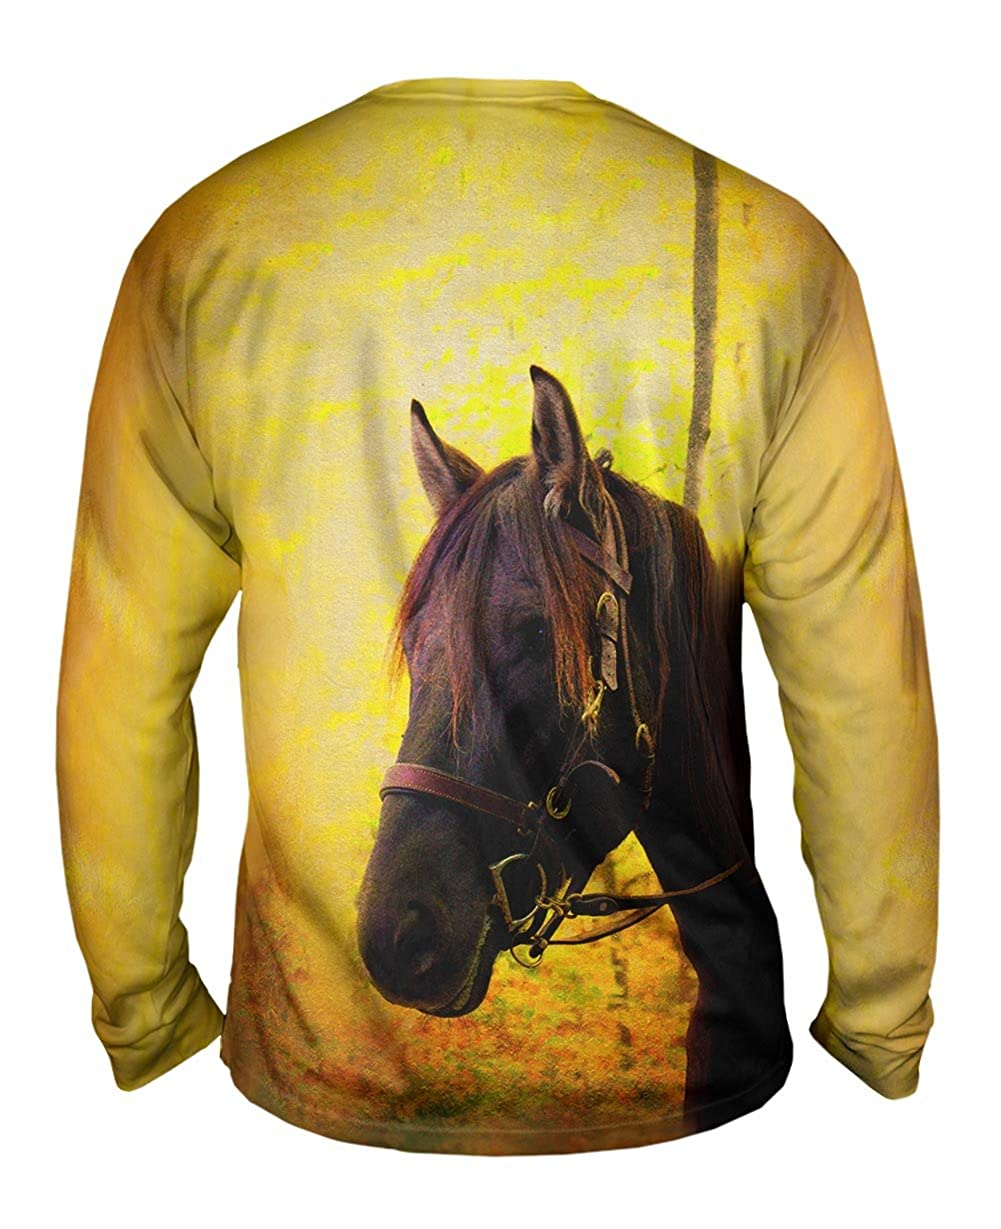 Yizzam TShirt Yellow Pride Horse Mens Long Sleeve